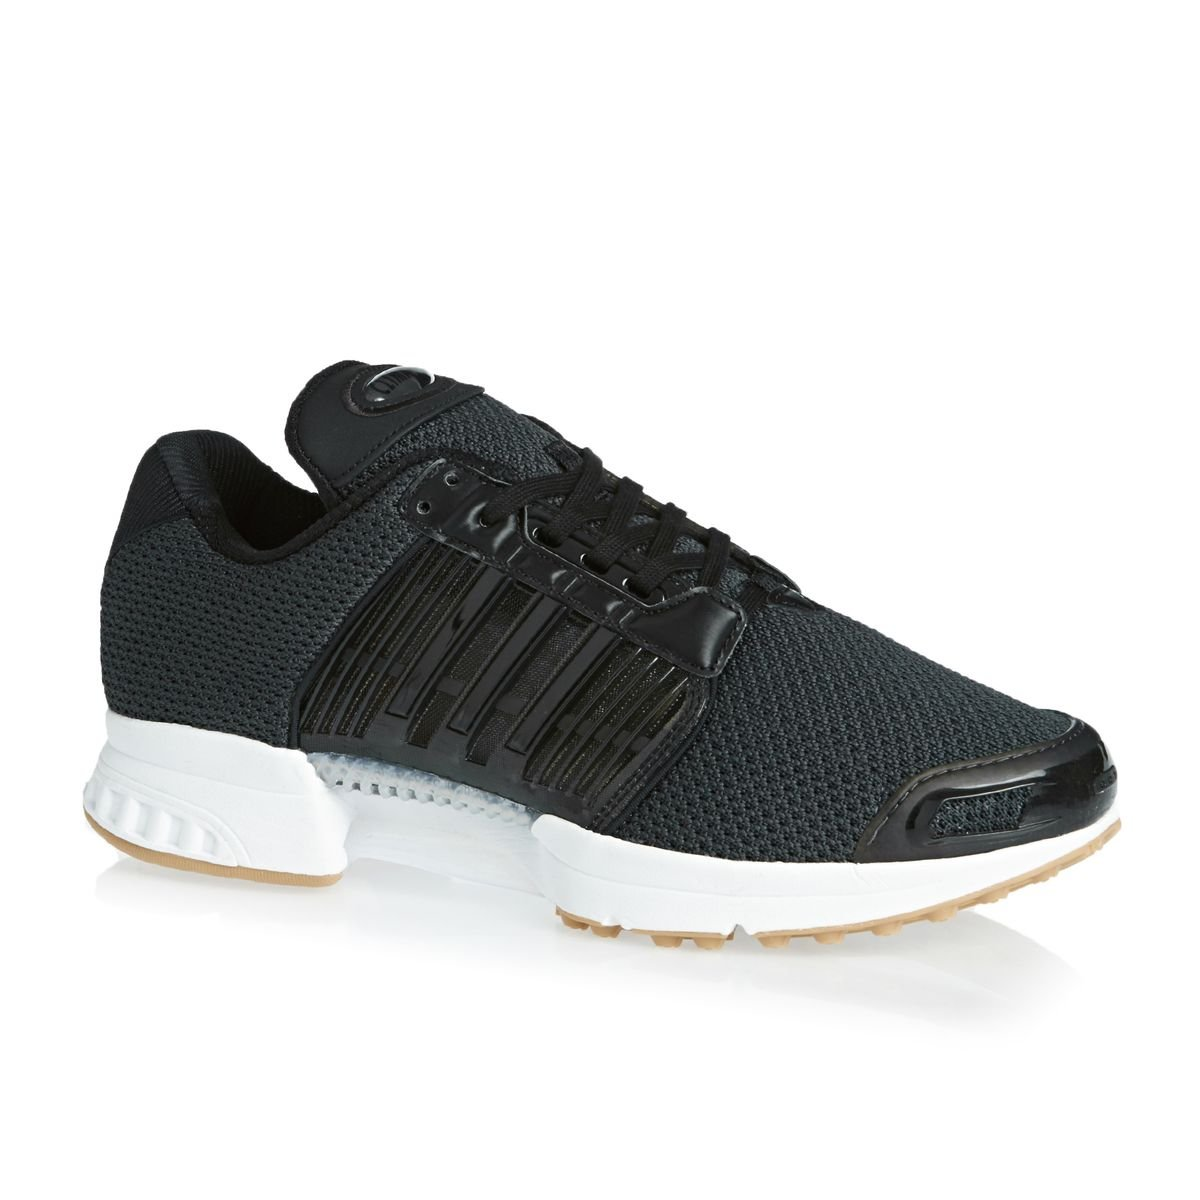 reputable site 8ce8d 29bc8 adidas Buty Climacool 1, Mens Hi-Top Trainers